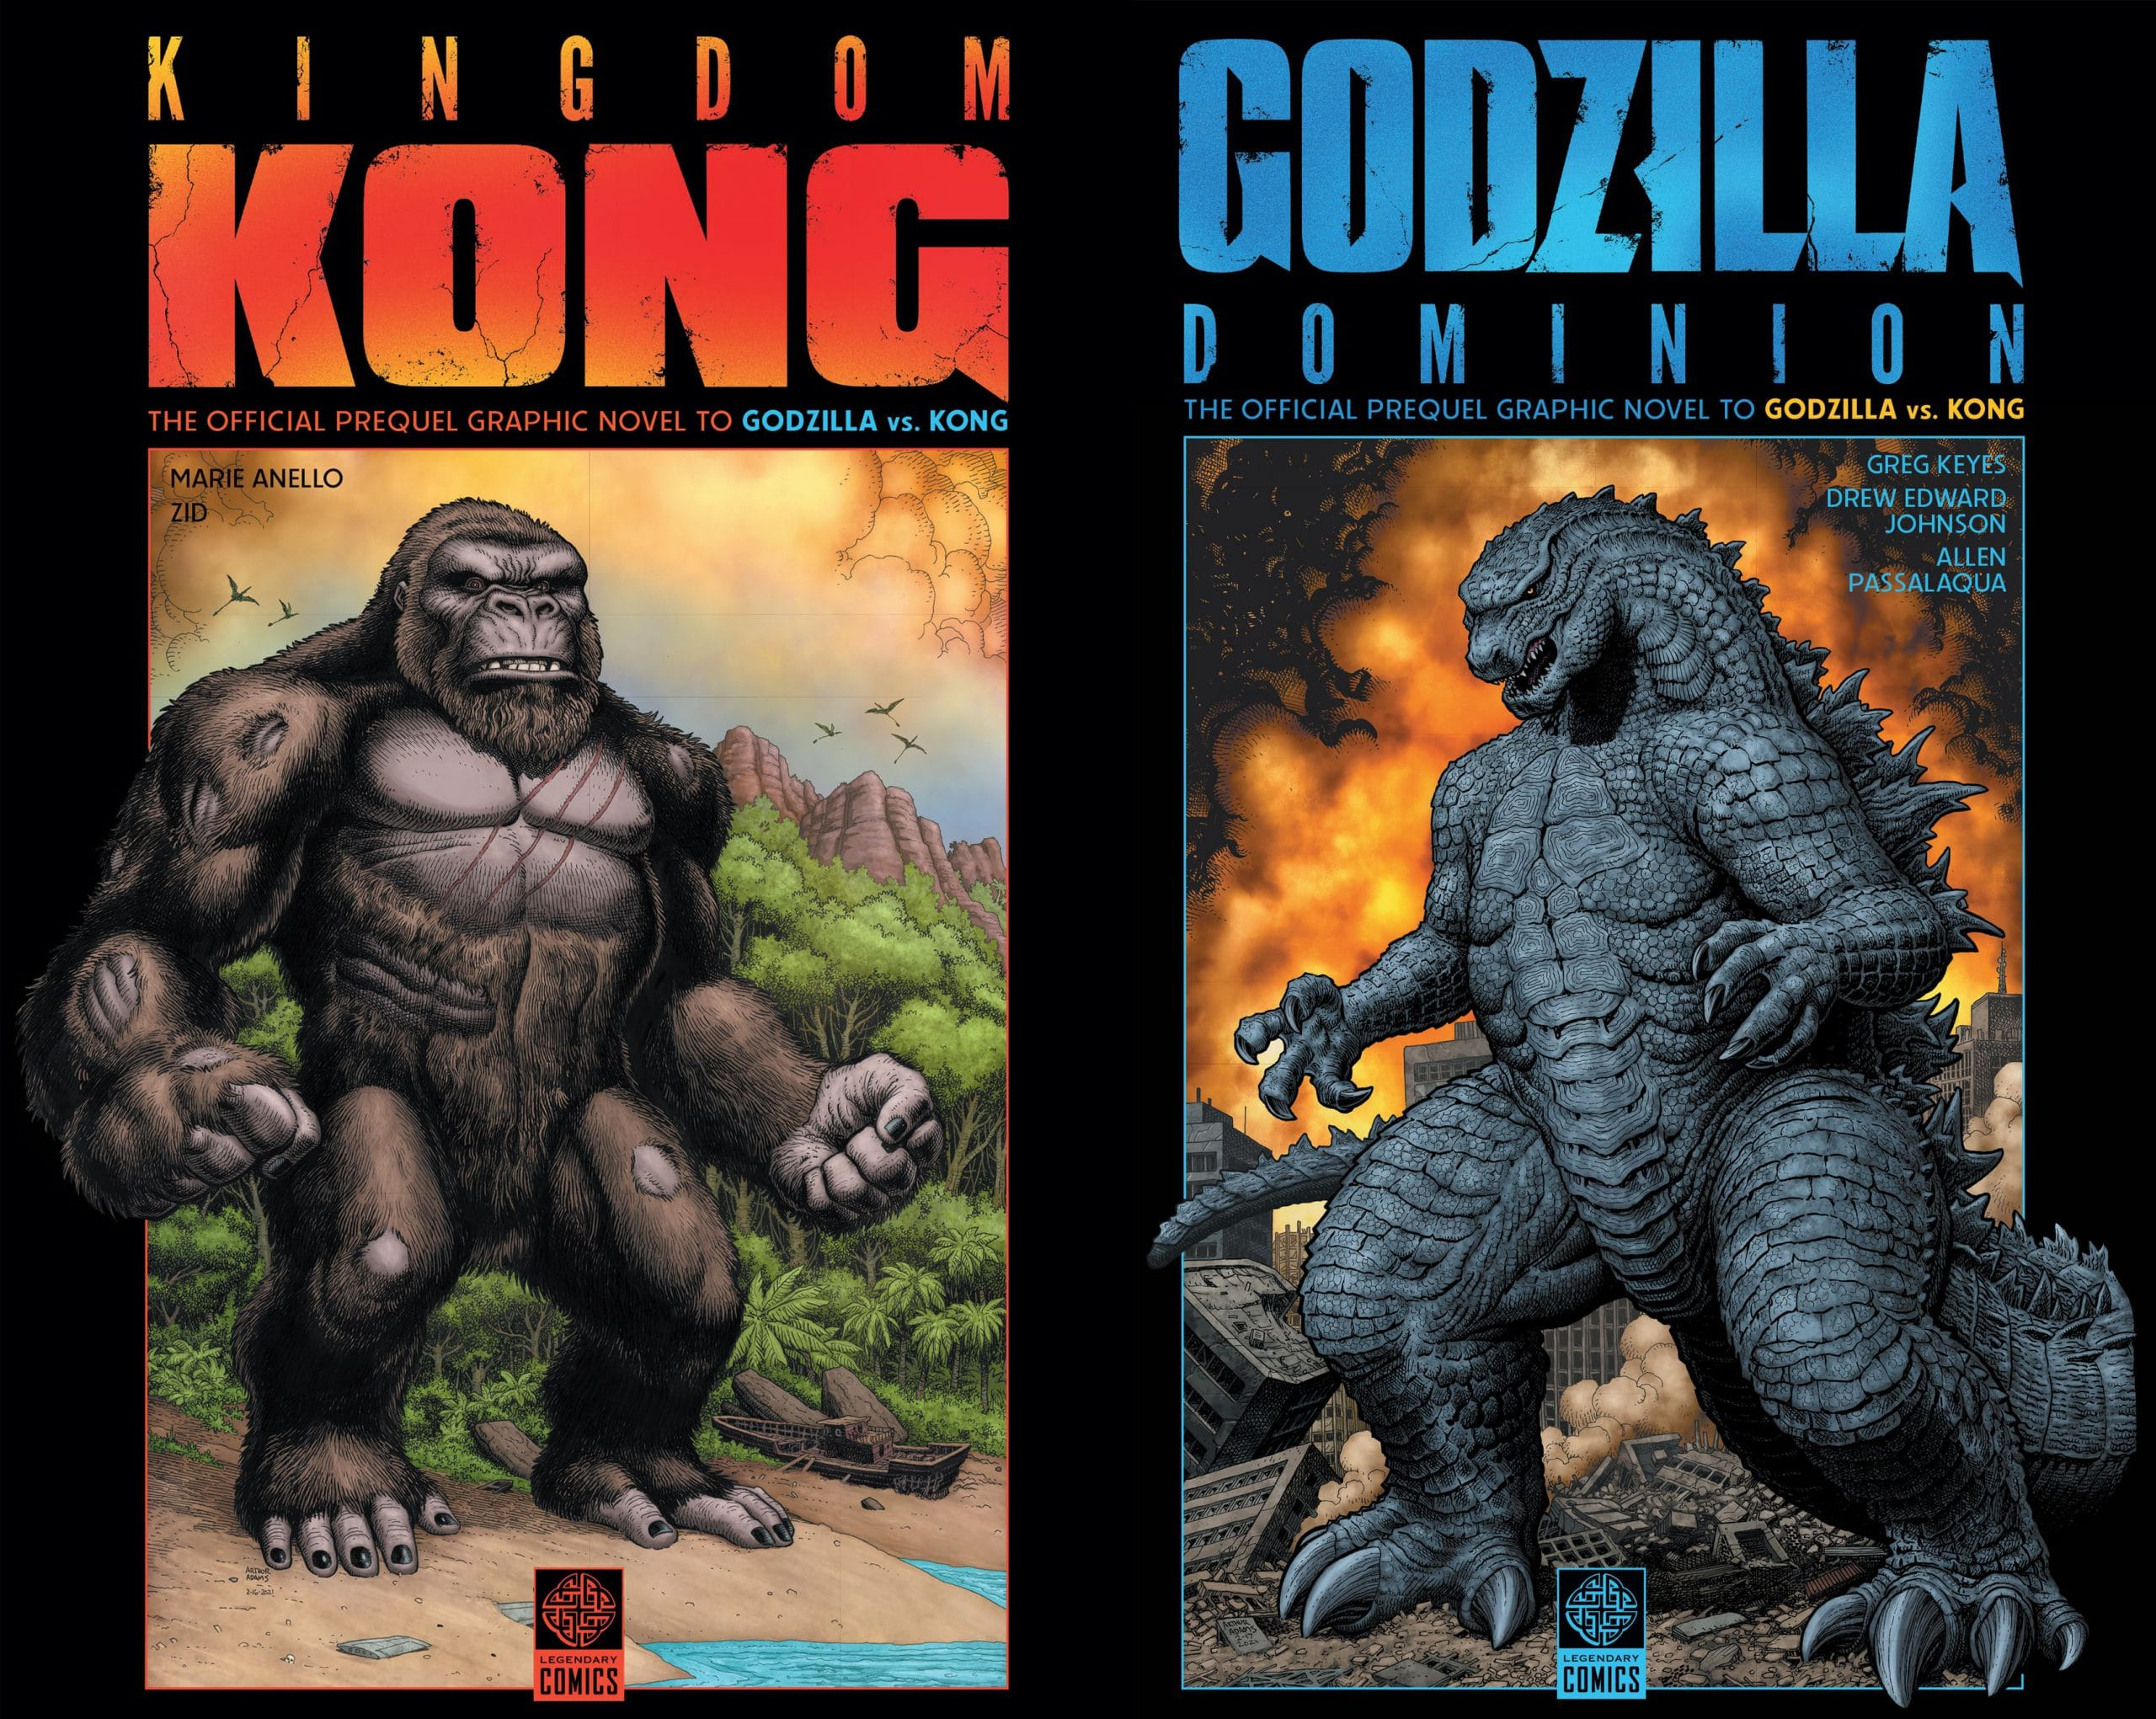 New Godzilla vs. Kong Comic Book Covers Unveiled by Legendary Comics